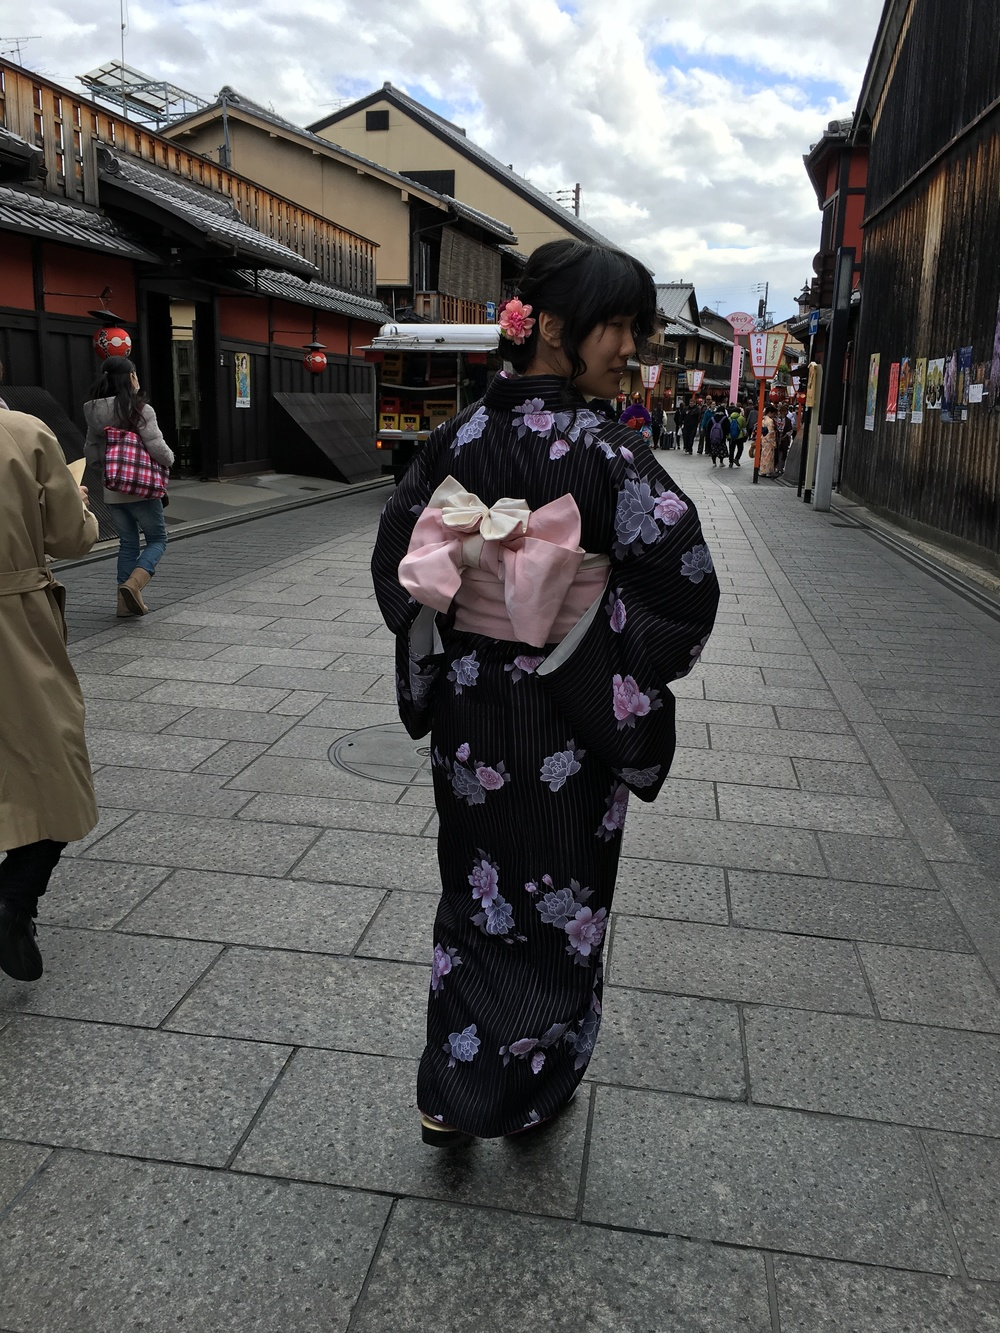 Kimono rentals are a popular tourist activity for foreigners in Kyoto. One researcher on the team dressed up in kimono for a day while I documented her experience.